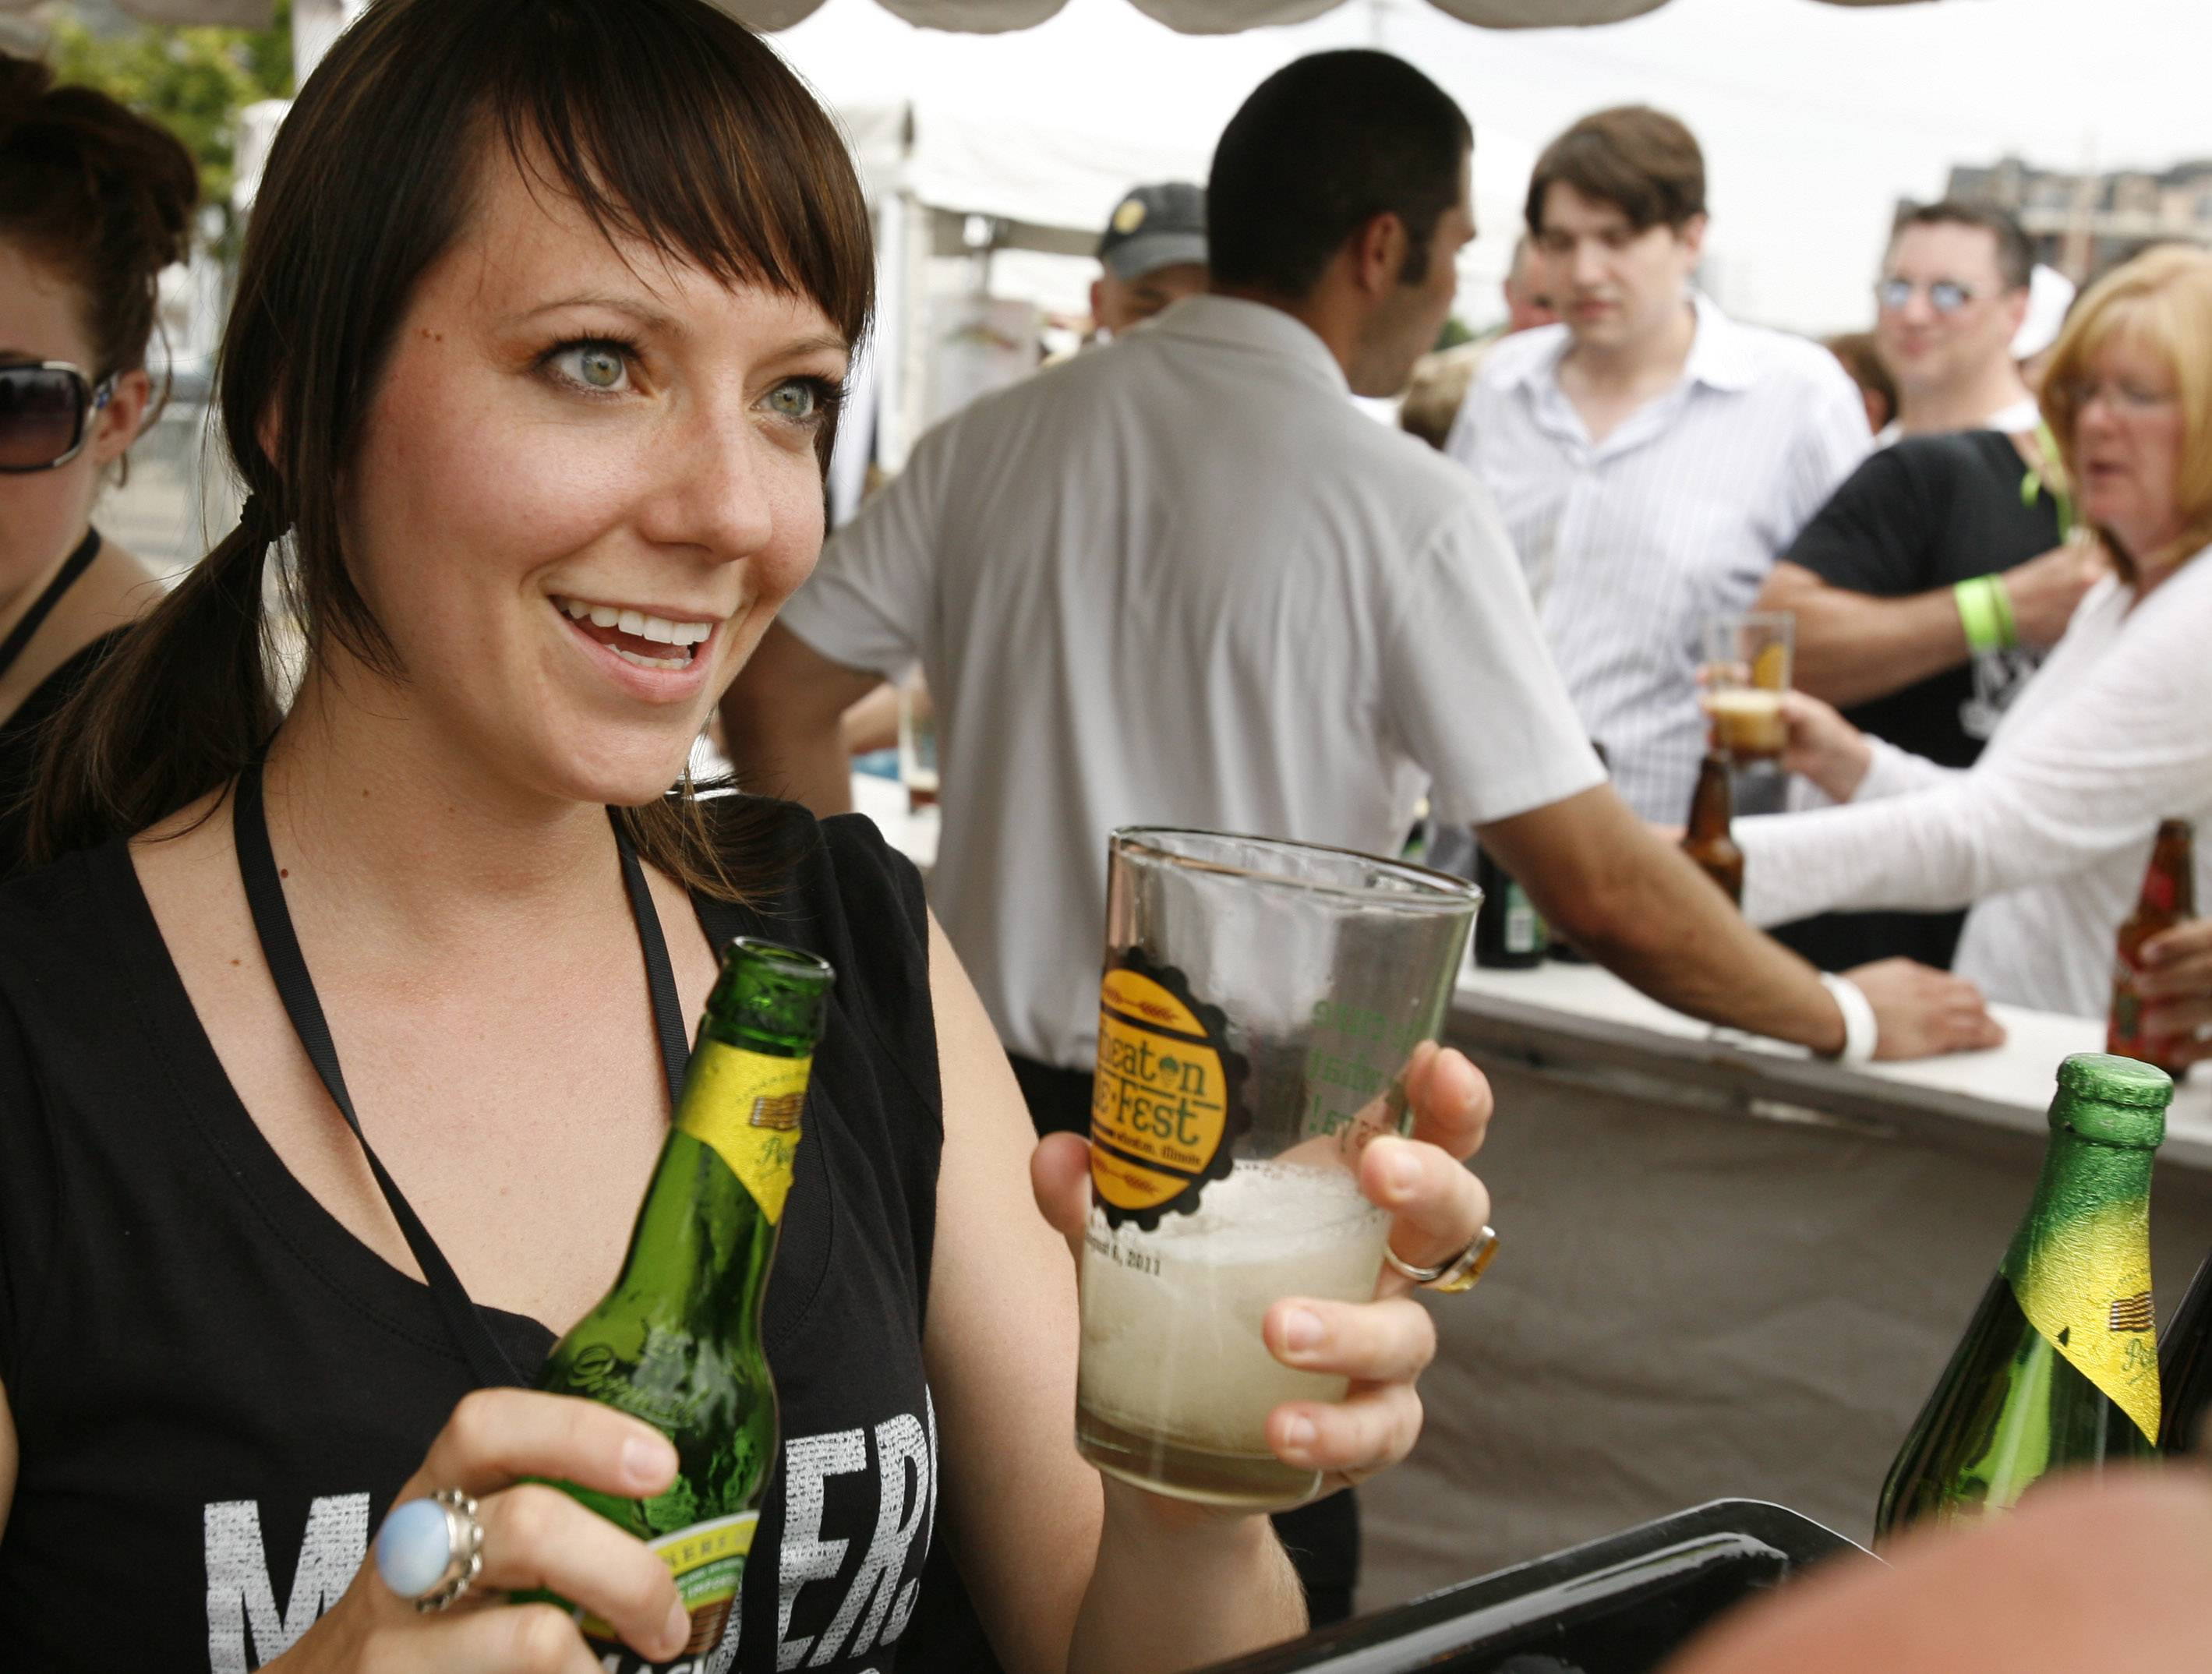 A second beer festival is coming June 21 to the once-dry city of Wheaton. The inaugural Wheaton Ale Fest in 2011 is pictured here. BrewFest Partners hosted the ale fest for two years before it was taken over by the Wheaton Park District.